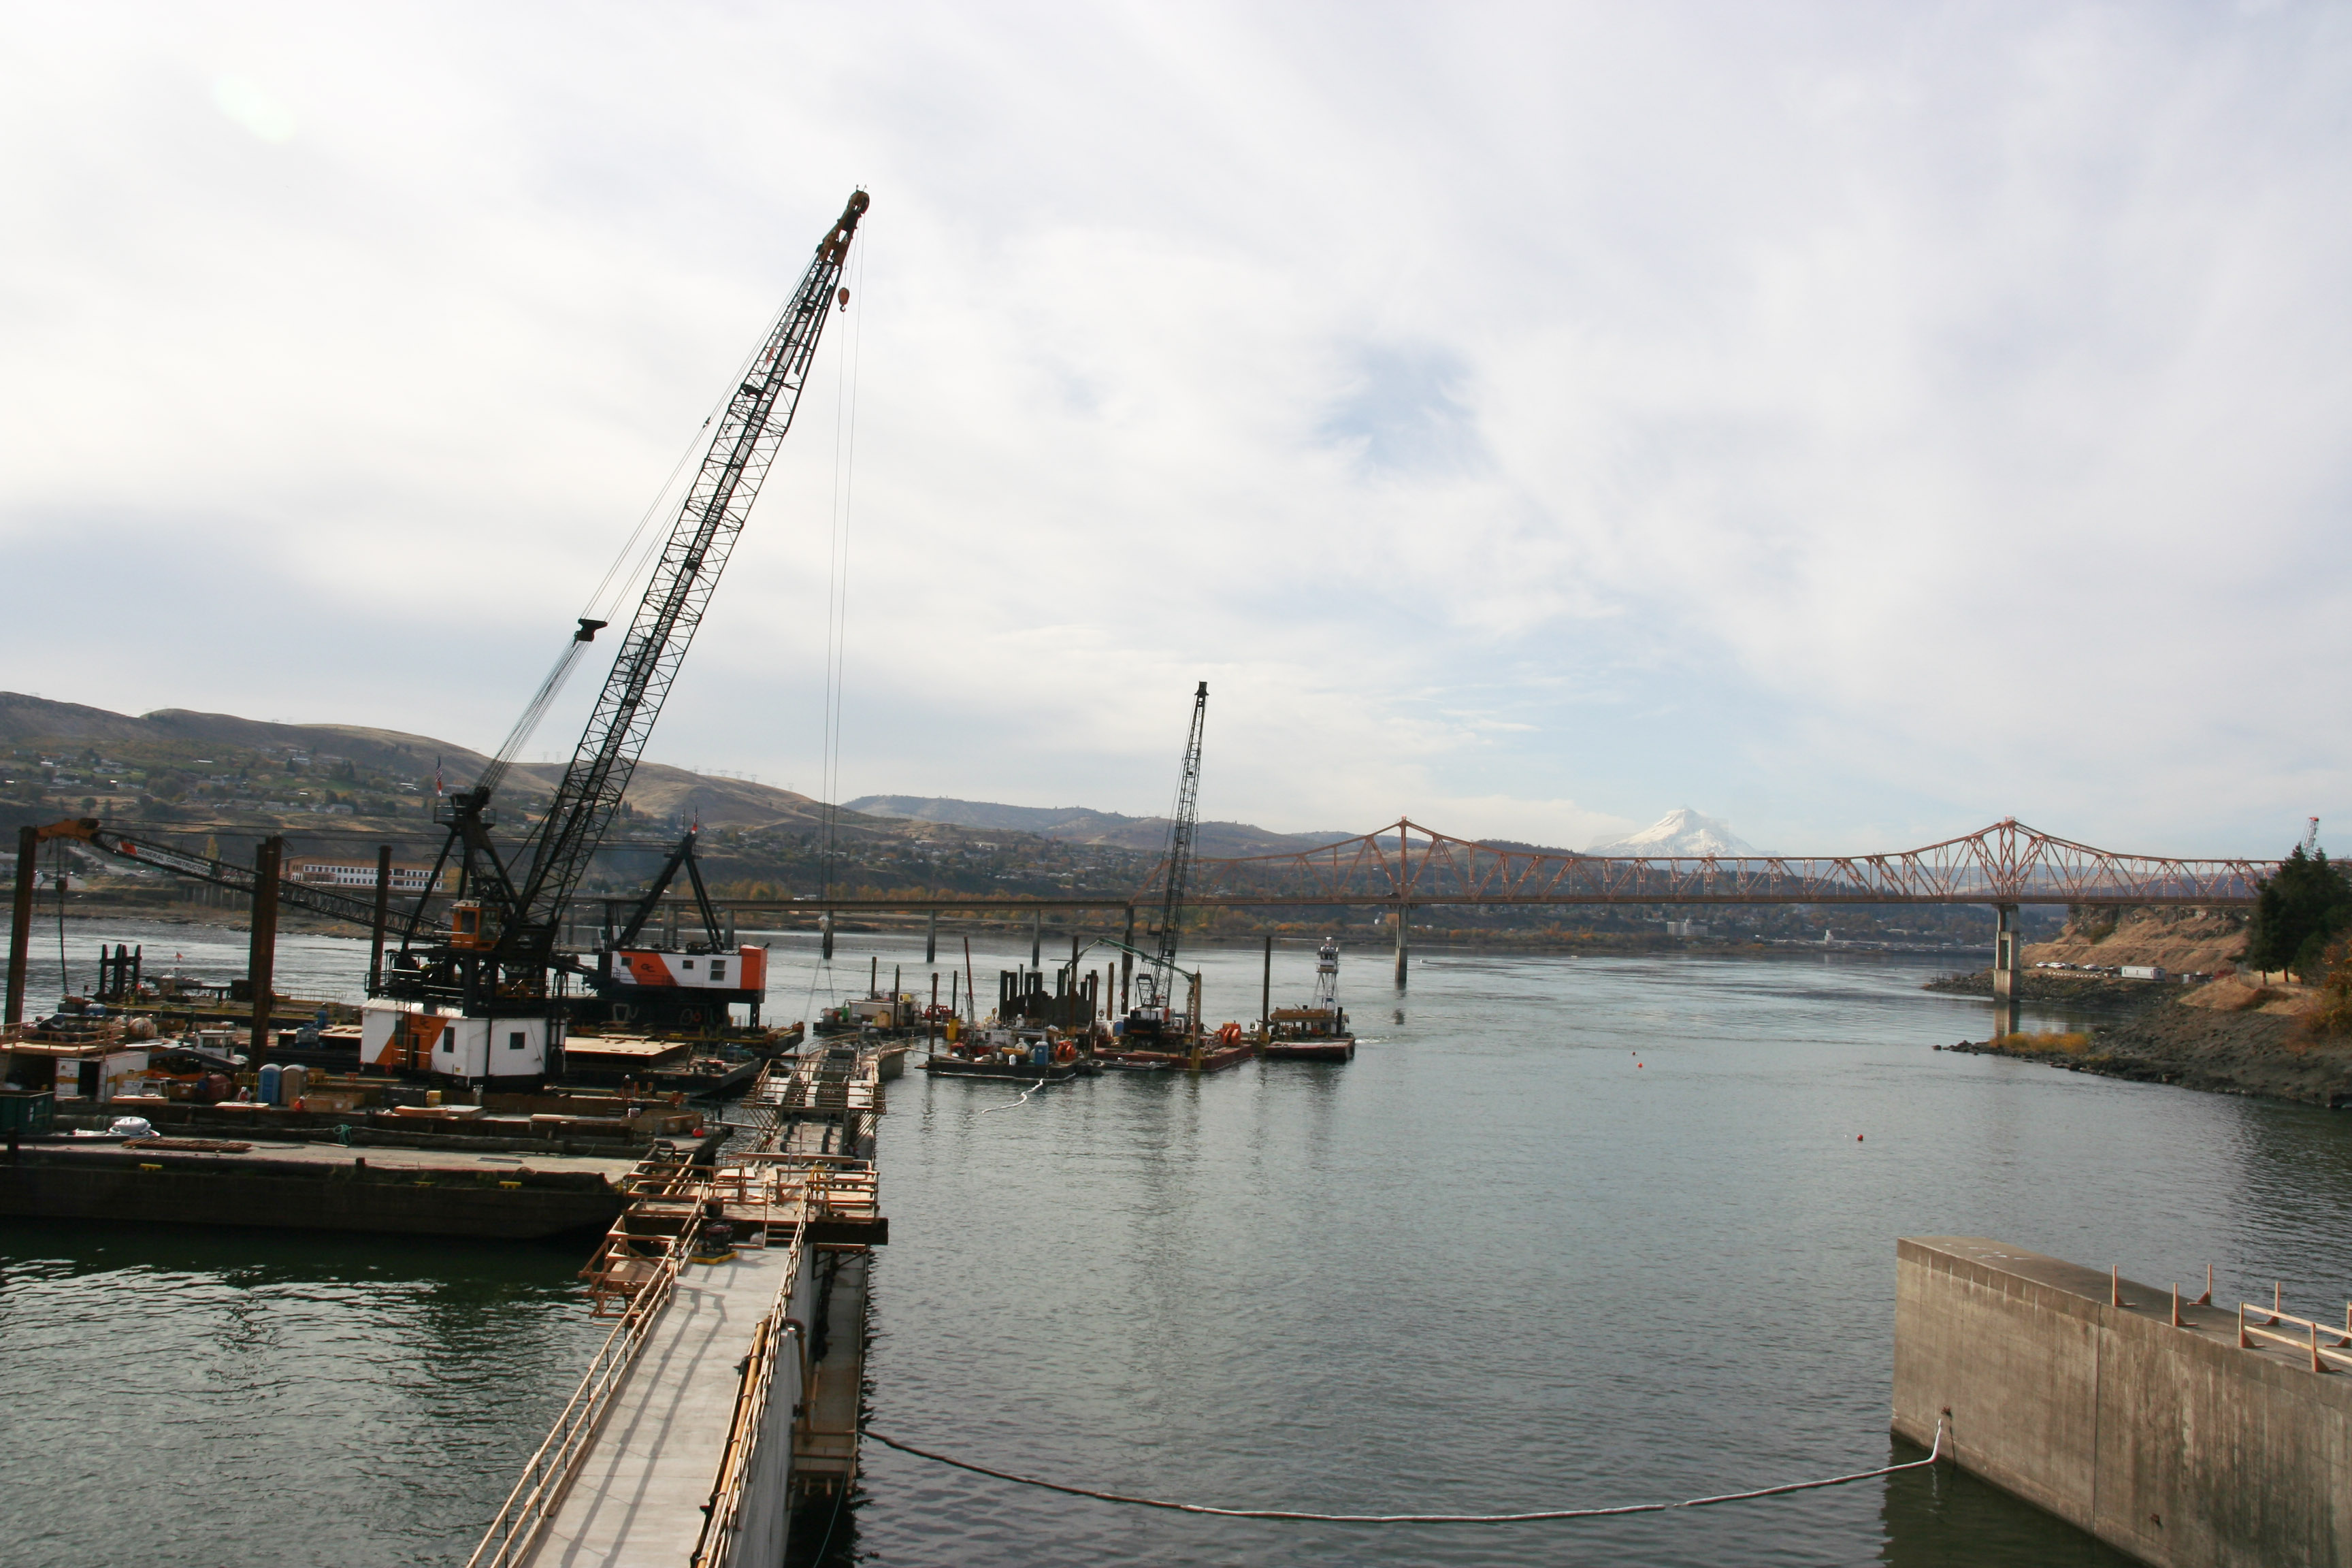 The Dalles Dam Spillway Bay 8 and 9